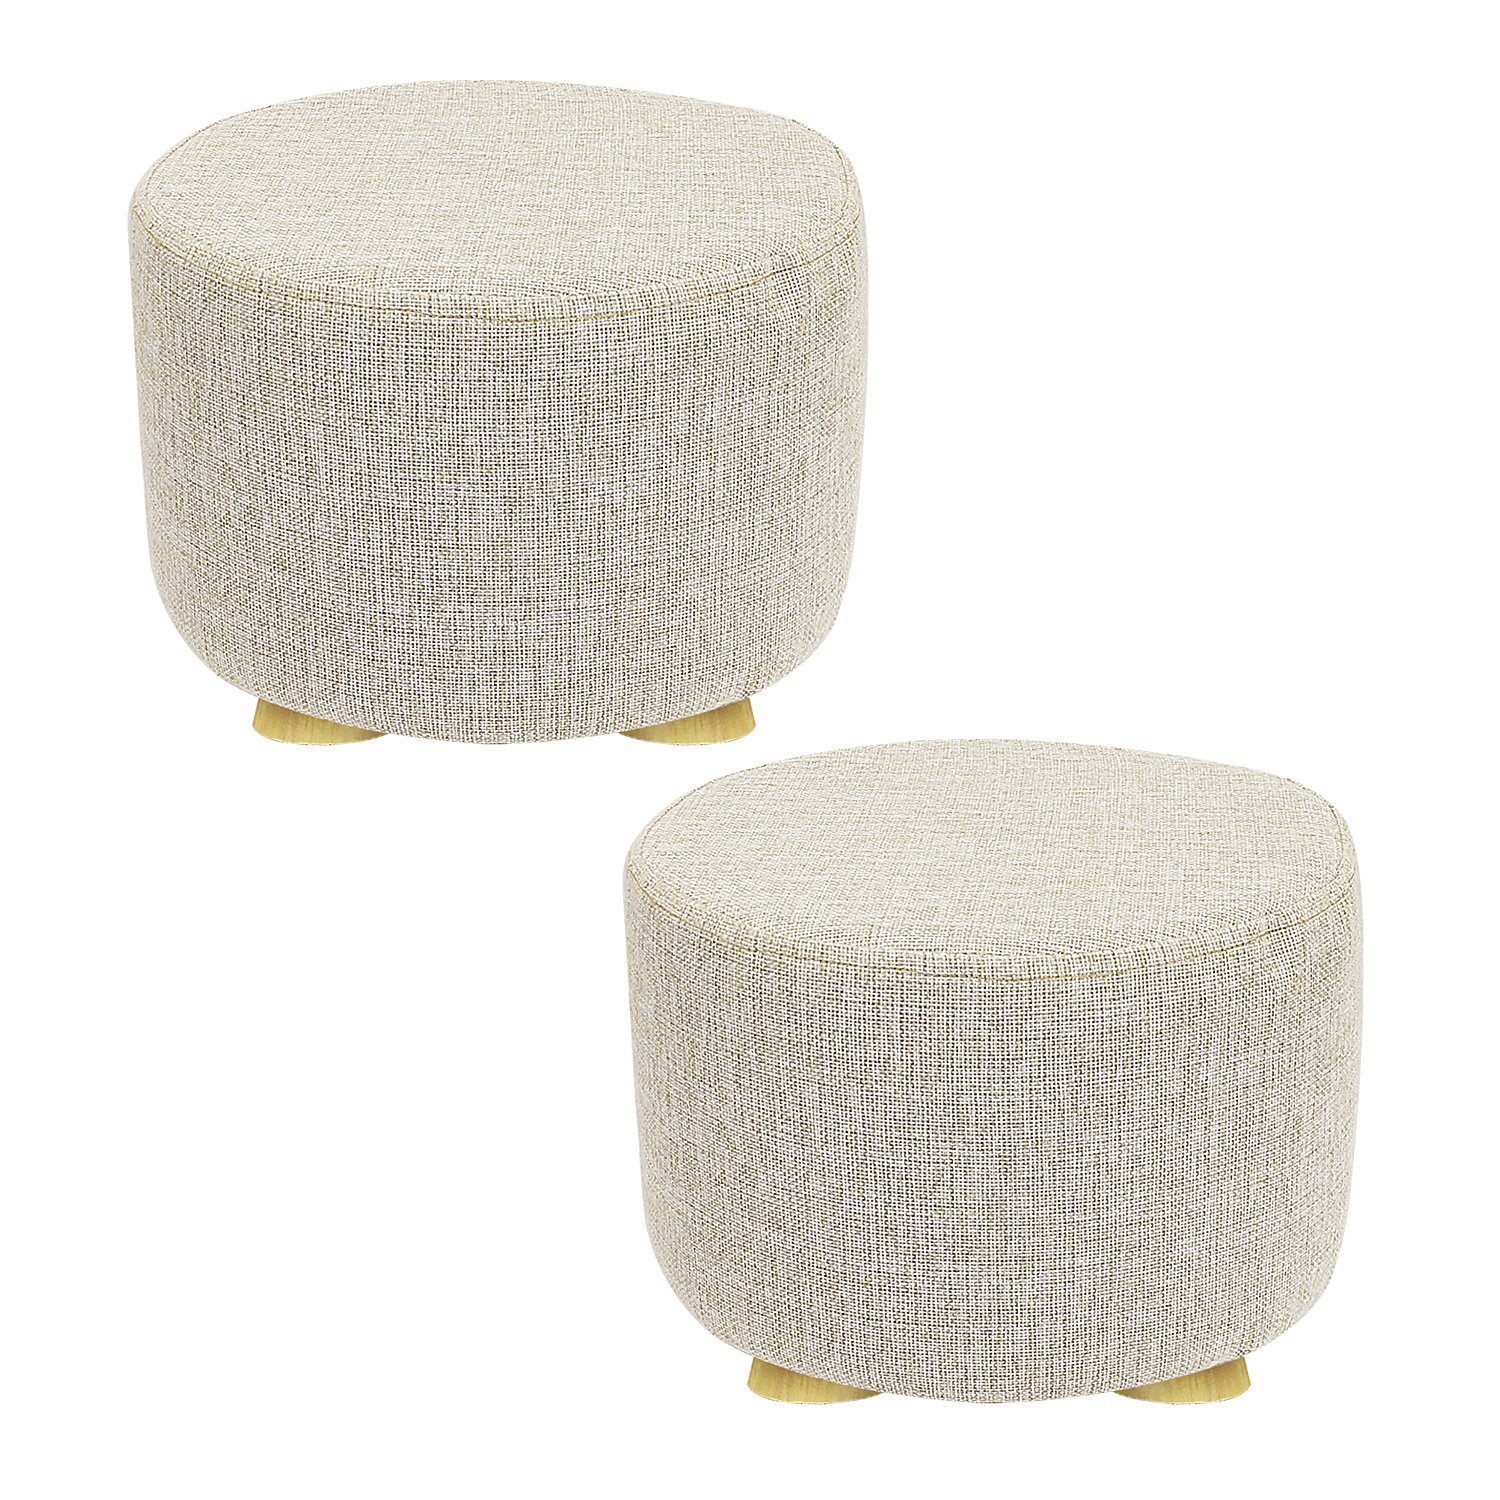 DL Furniture   2 Piece Round Ottoman Foot Stool, 4 Leg Stands, Short Leg